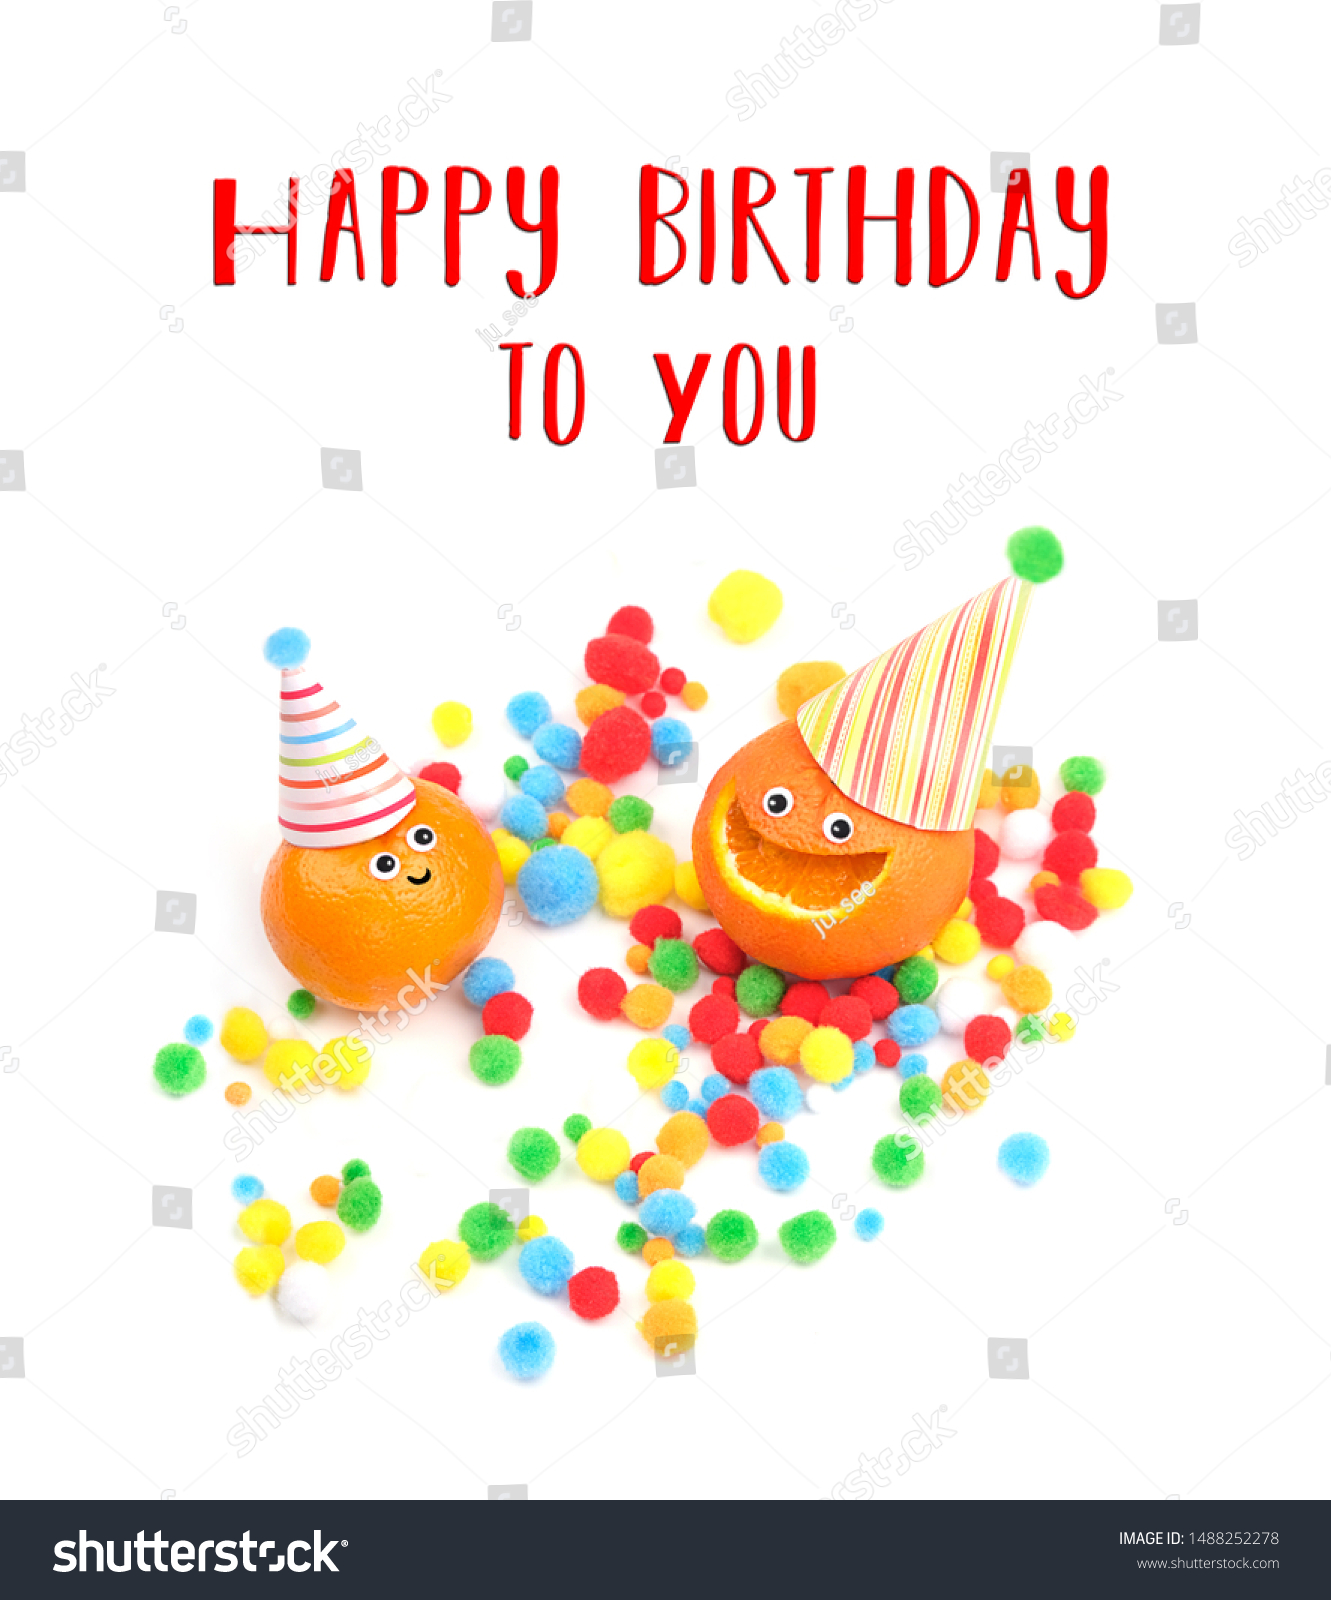 Happy Birthday You Greeting Card Two Stock Photo Edit Now 1488252278